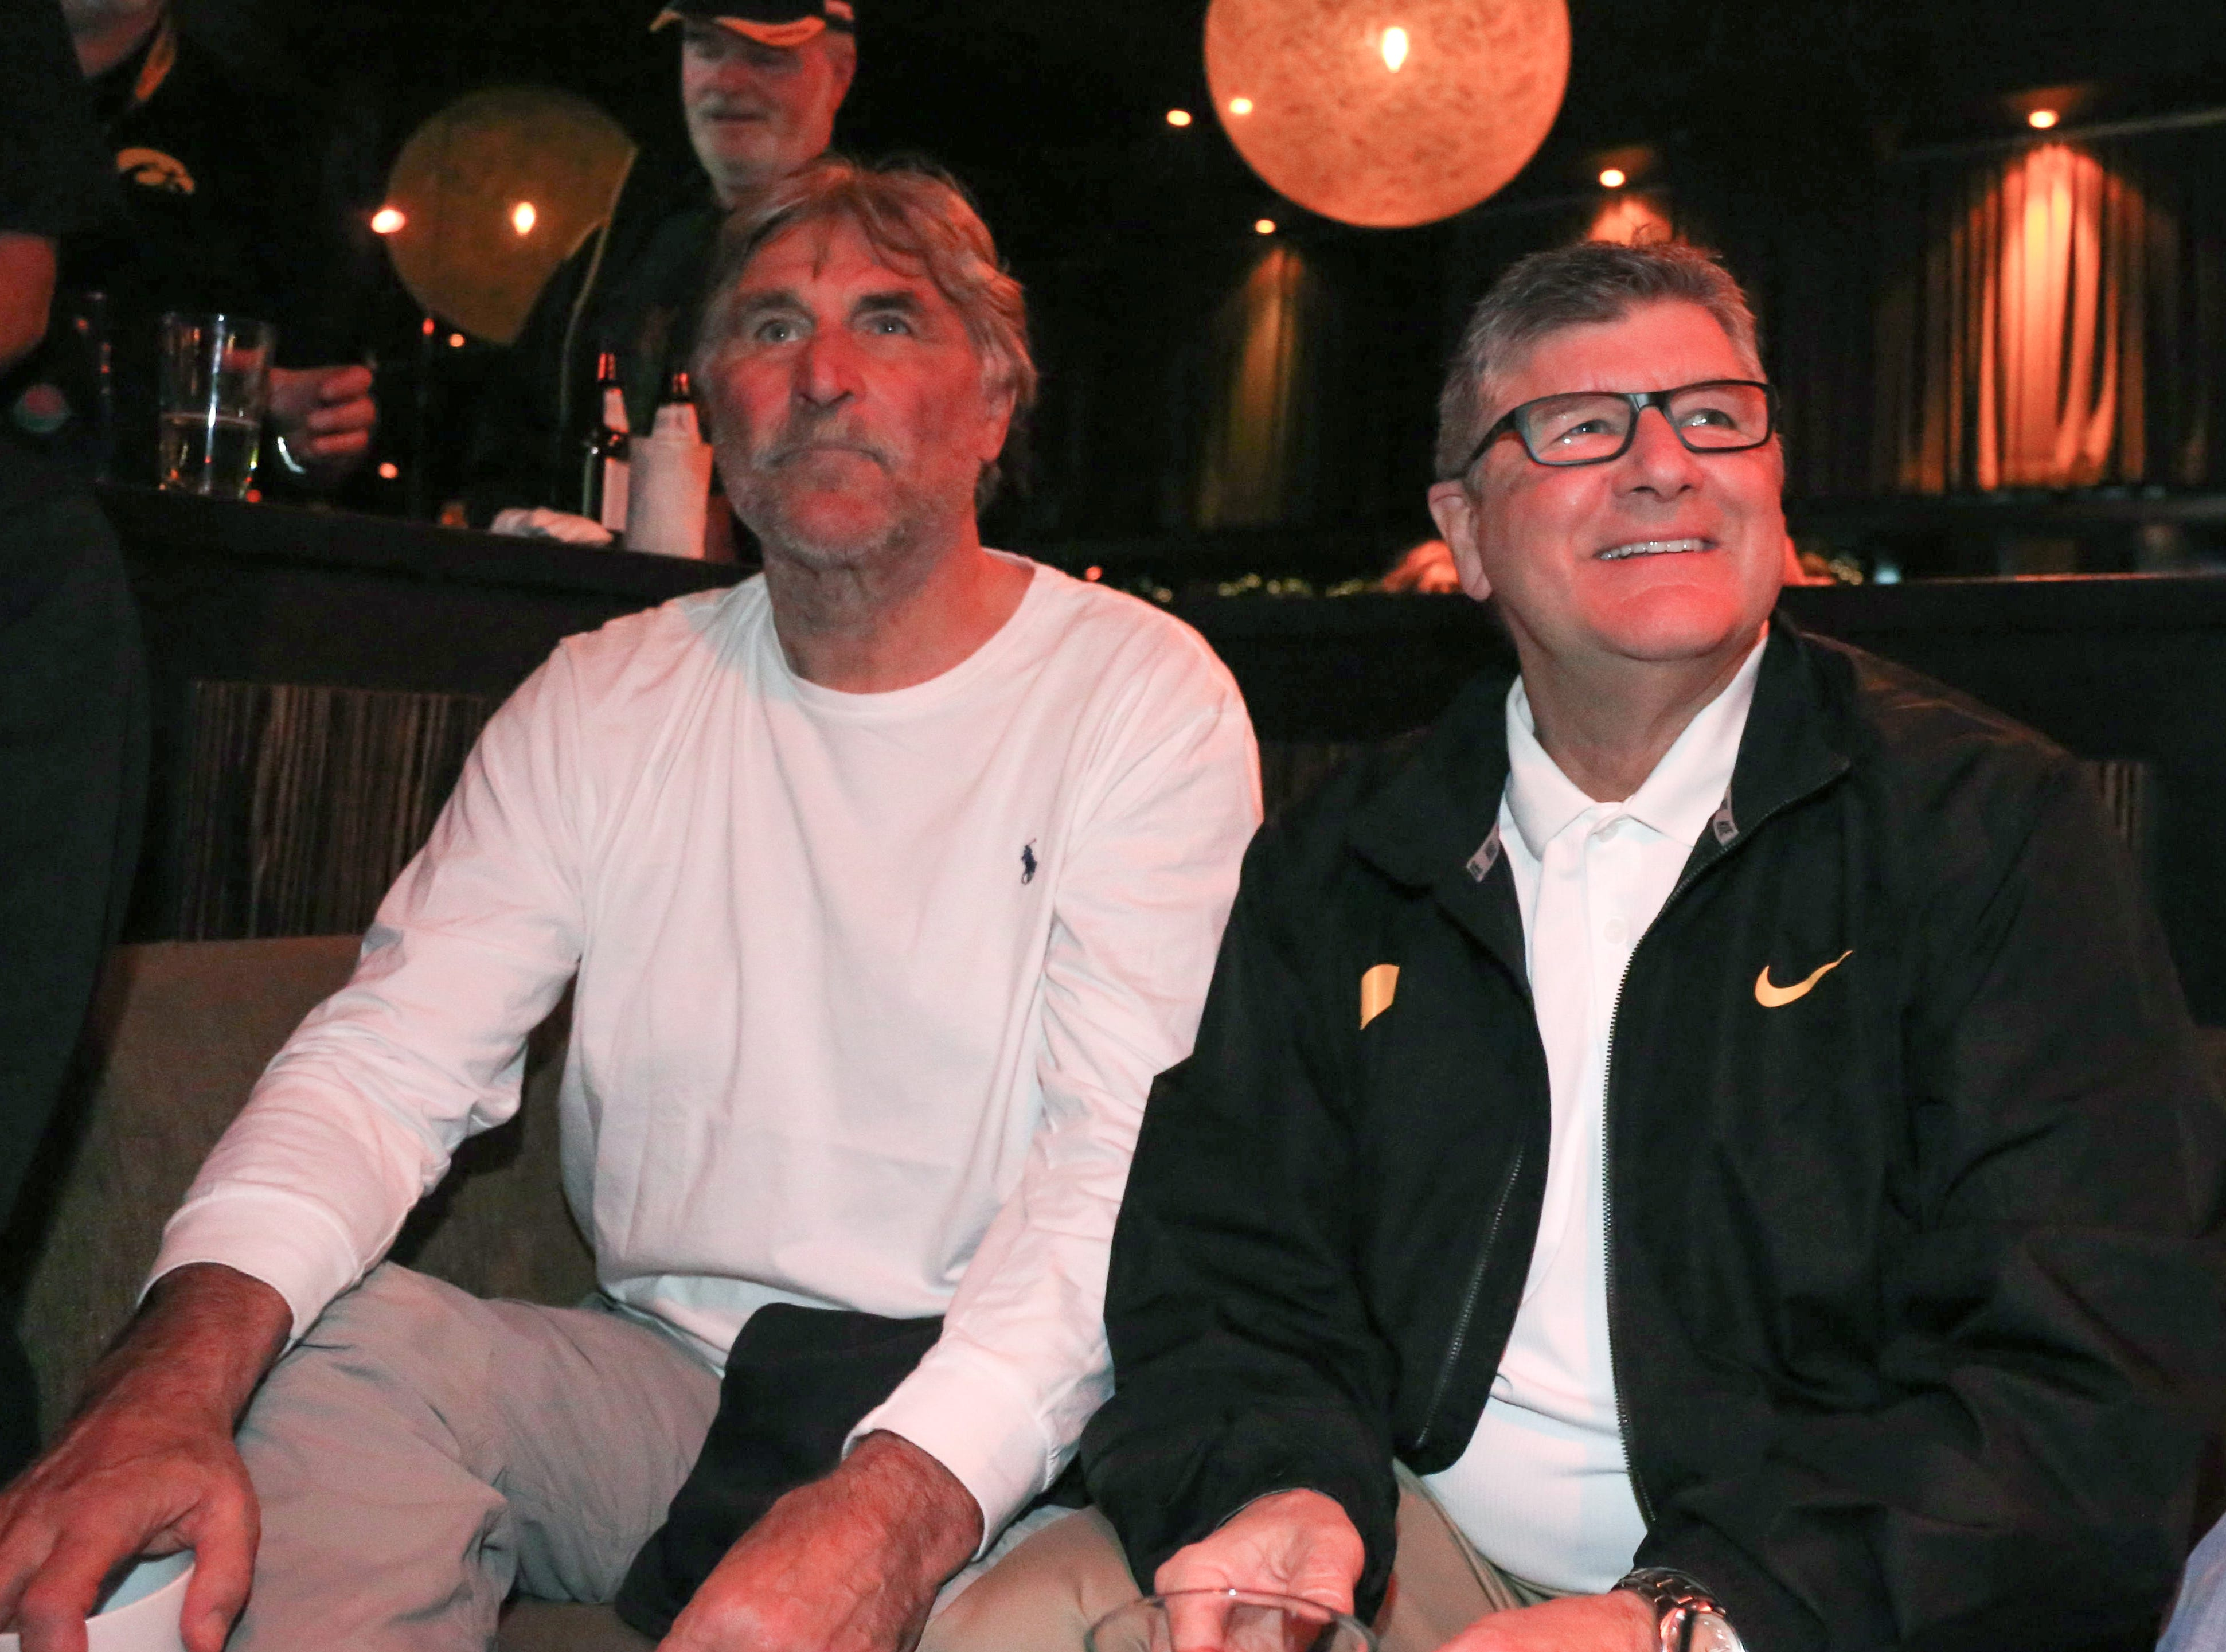 From 2015: Iowa Hawkeye broadcasters Ed Podolak, left, and Gary Dolphin watch the Iowa men's basketball team extend a lead against Michigan State from a watch party on Dec. 29, 2015, at Lucky Strike Live in Los Angeles. The Hawkeyes football team will be playing in Friday's Rose Bowl, against Stanford, in Pasadena.